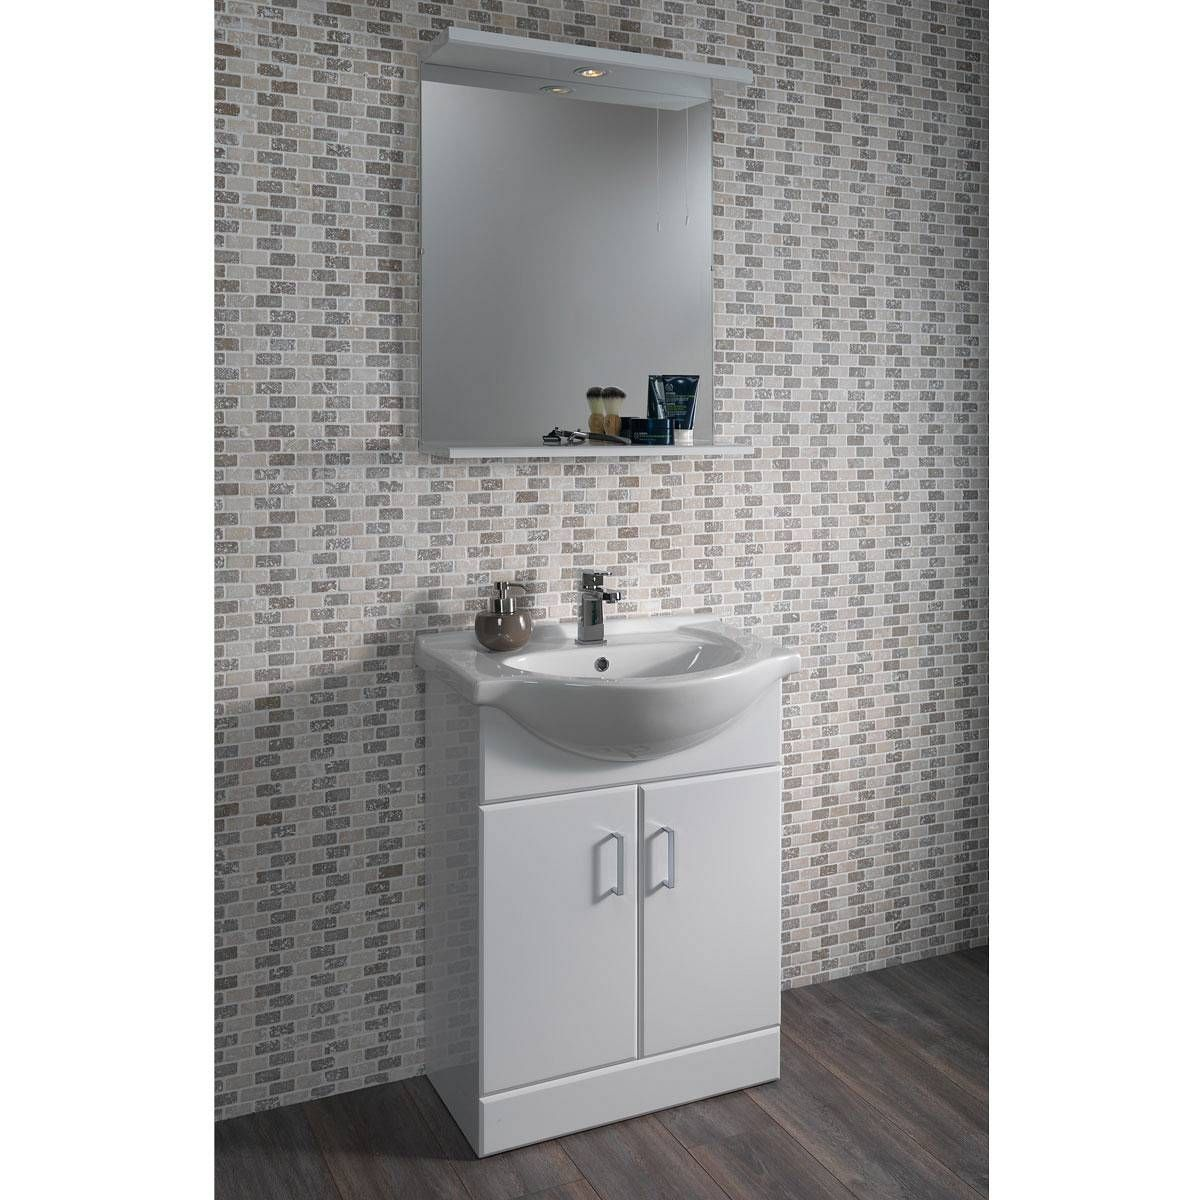 Sienna White 65 Vanity Unit Basin Now 119 99 Half Price White Bathroom Furniture Vanity Units Basin